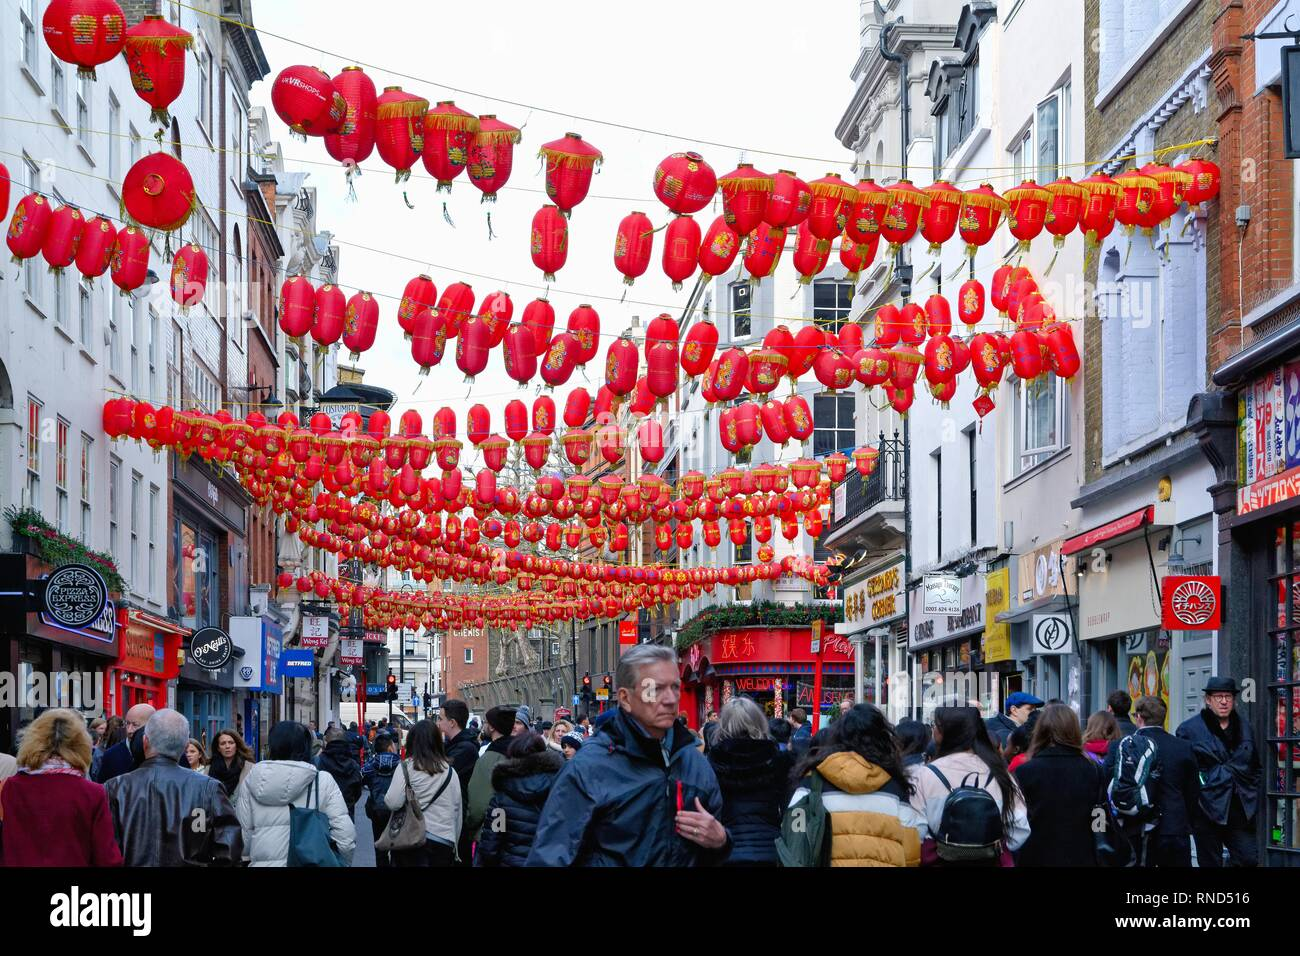 The Chinatown area in central London with the streets decorated with many red Chinese lanterns England UK Stock Photo